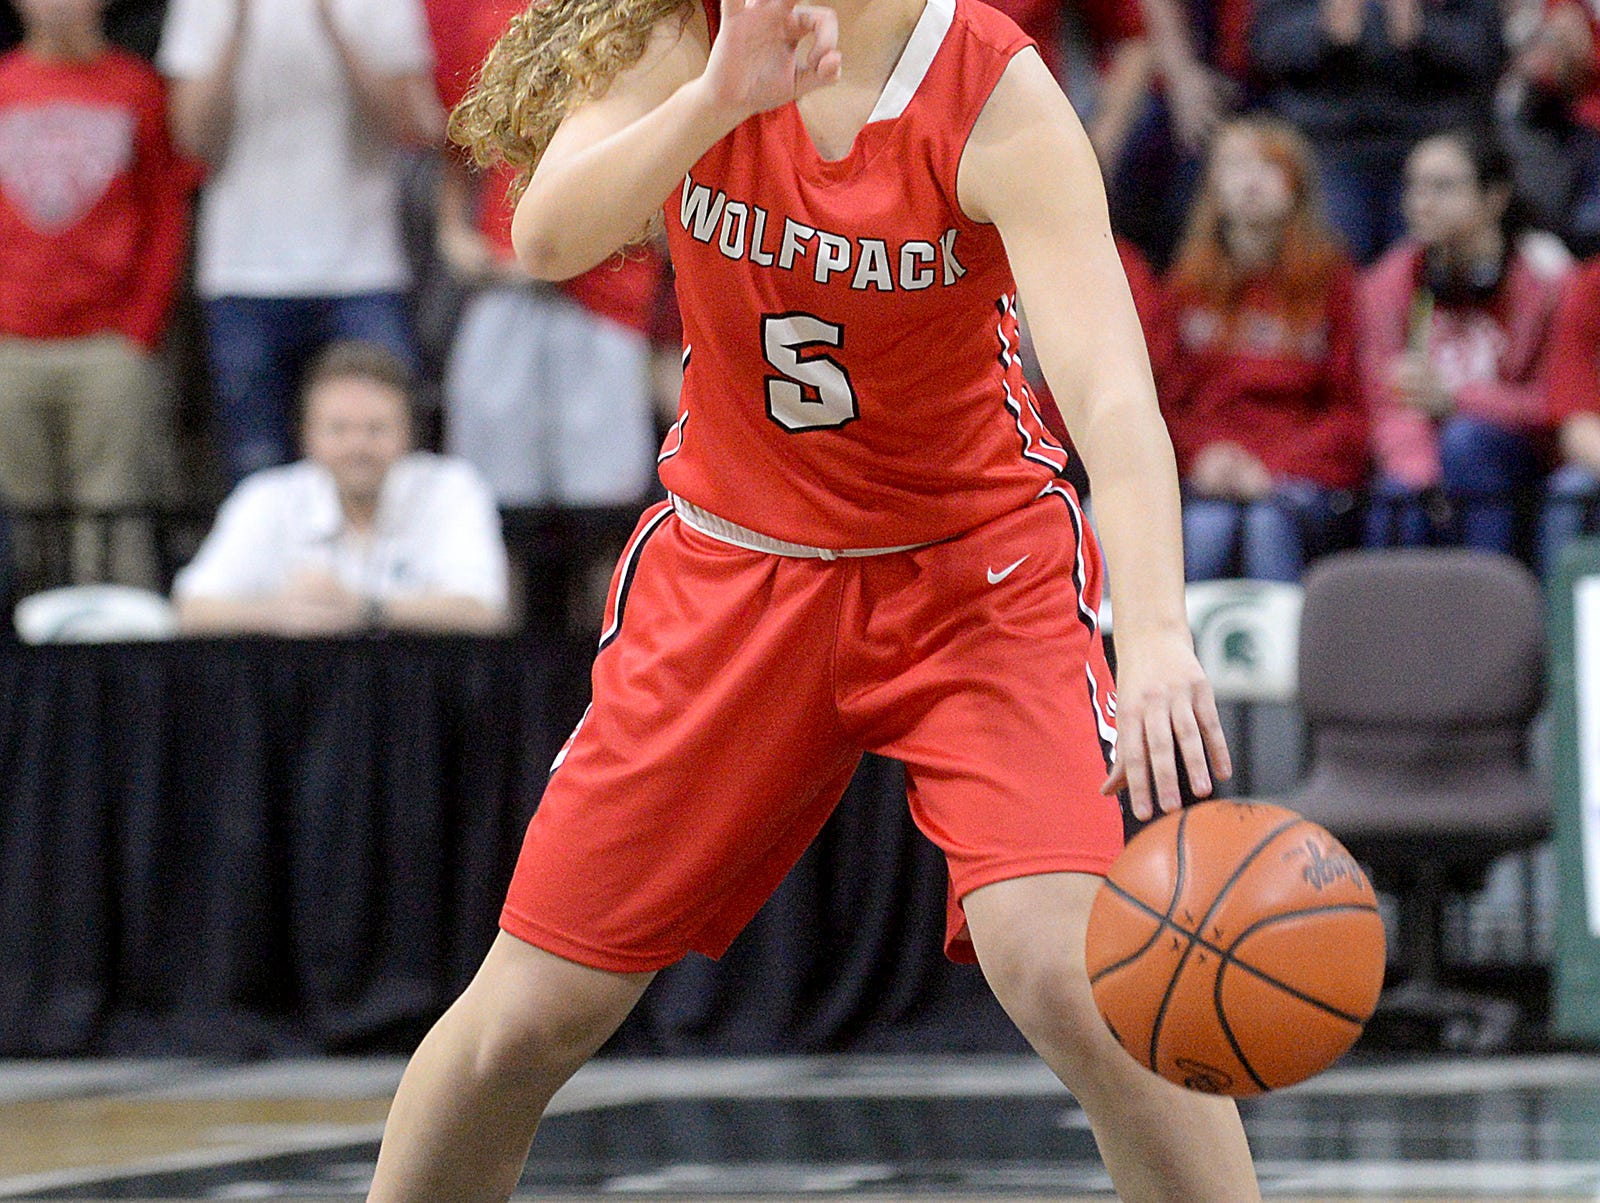 Guard Julia Angst calls out a play for Laingsburg during their Class C State Semifinal matchup against Calumet Thursday, March 19, 2015. Calumet won 30-26 to advance to Saturday's state final agains Flint Hamady.